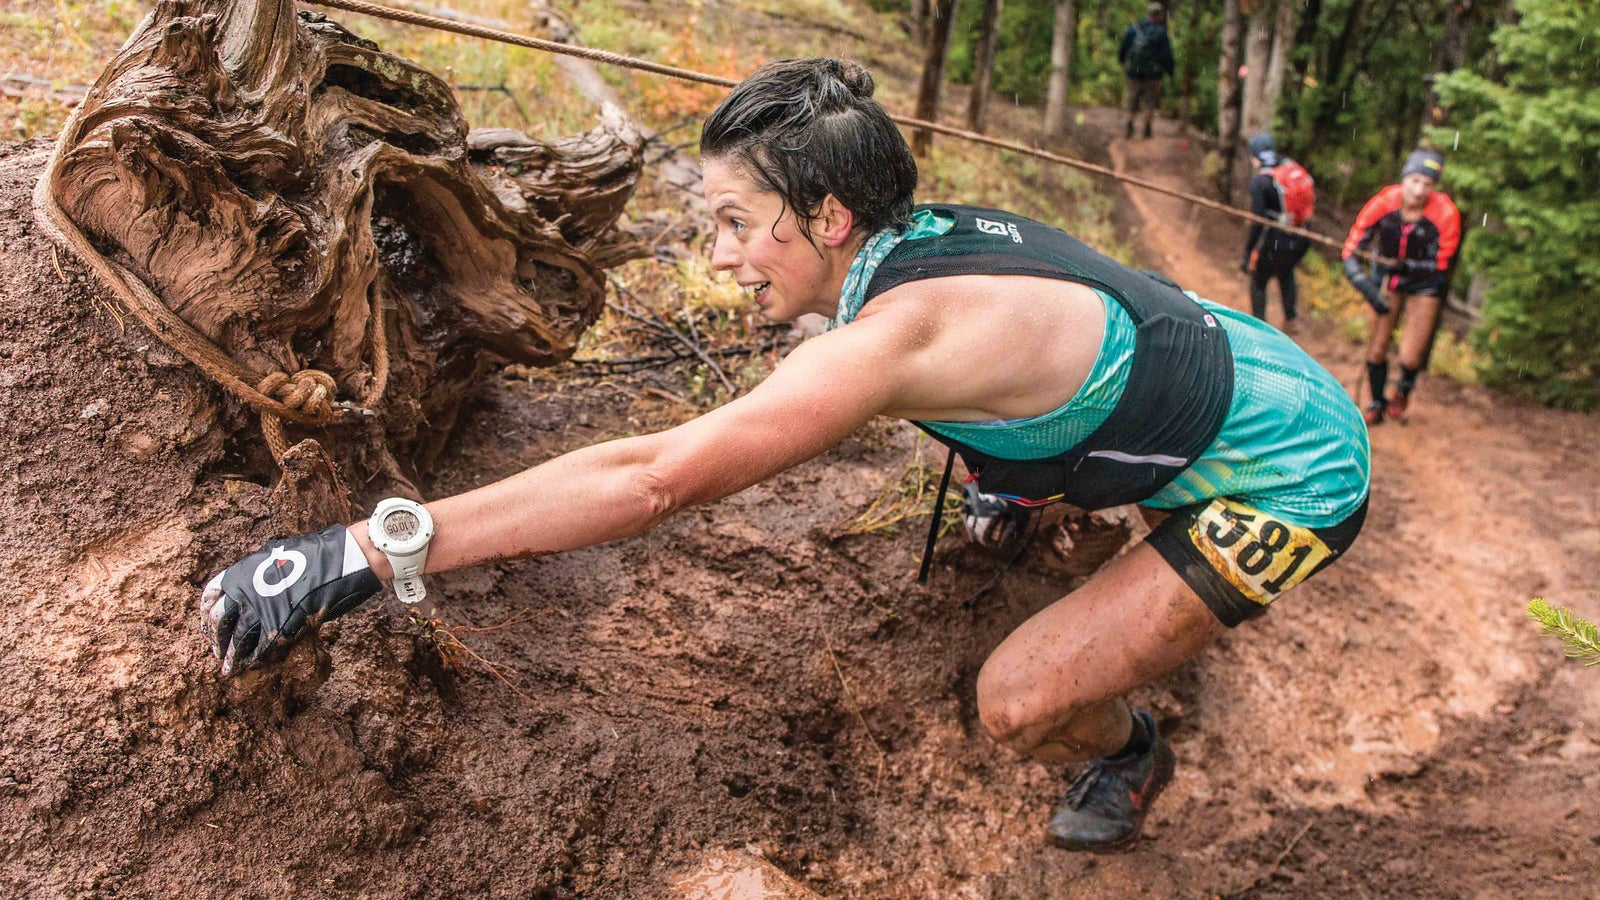 A woman climbs up a muddy slope during Run the Rut